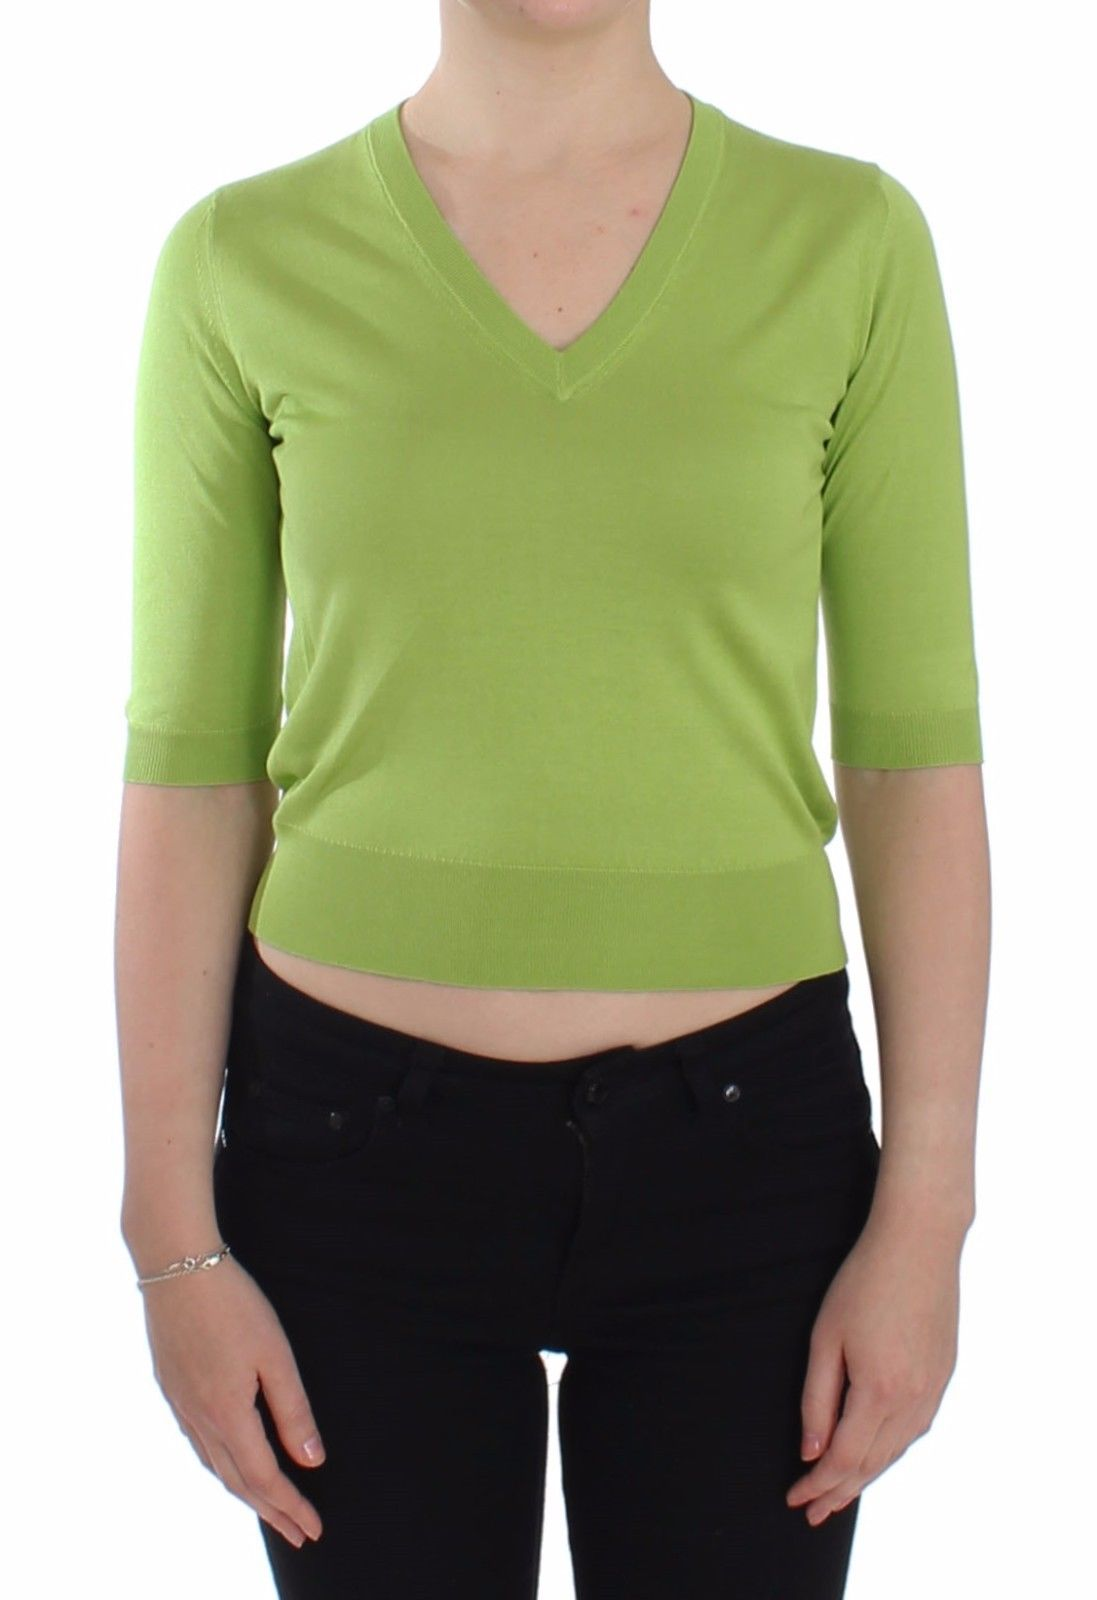 Green Wool V-neck Pullover Sweater Top - IT38   S